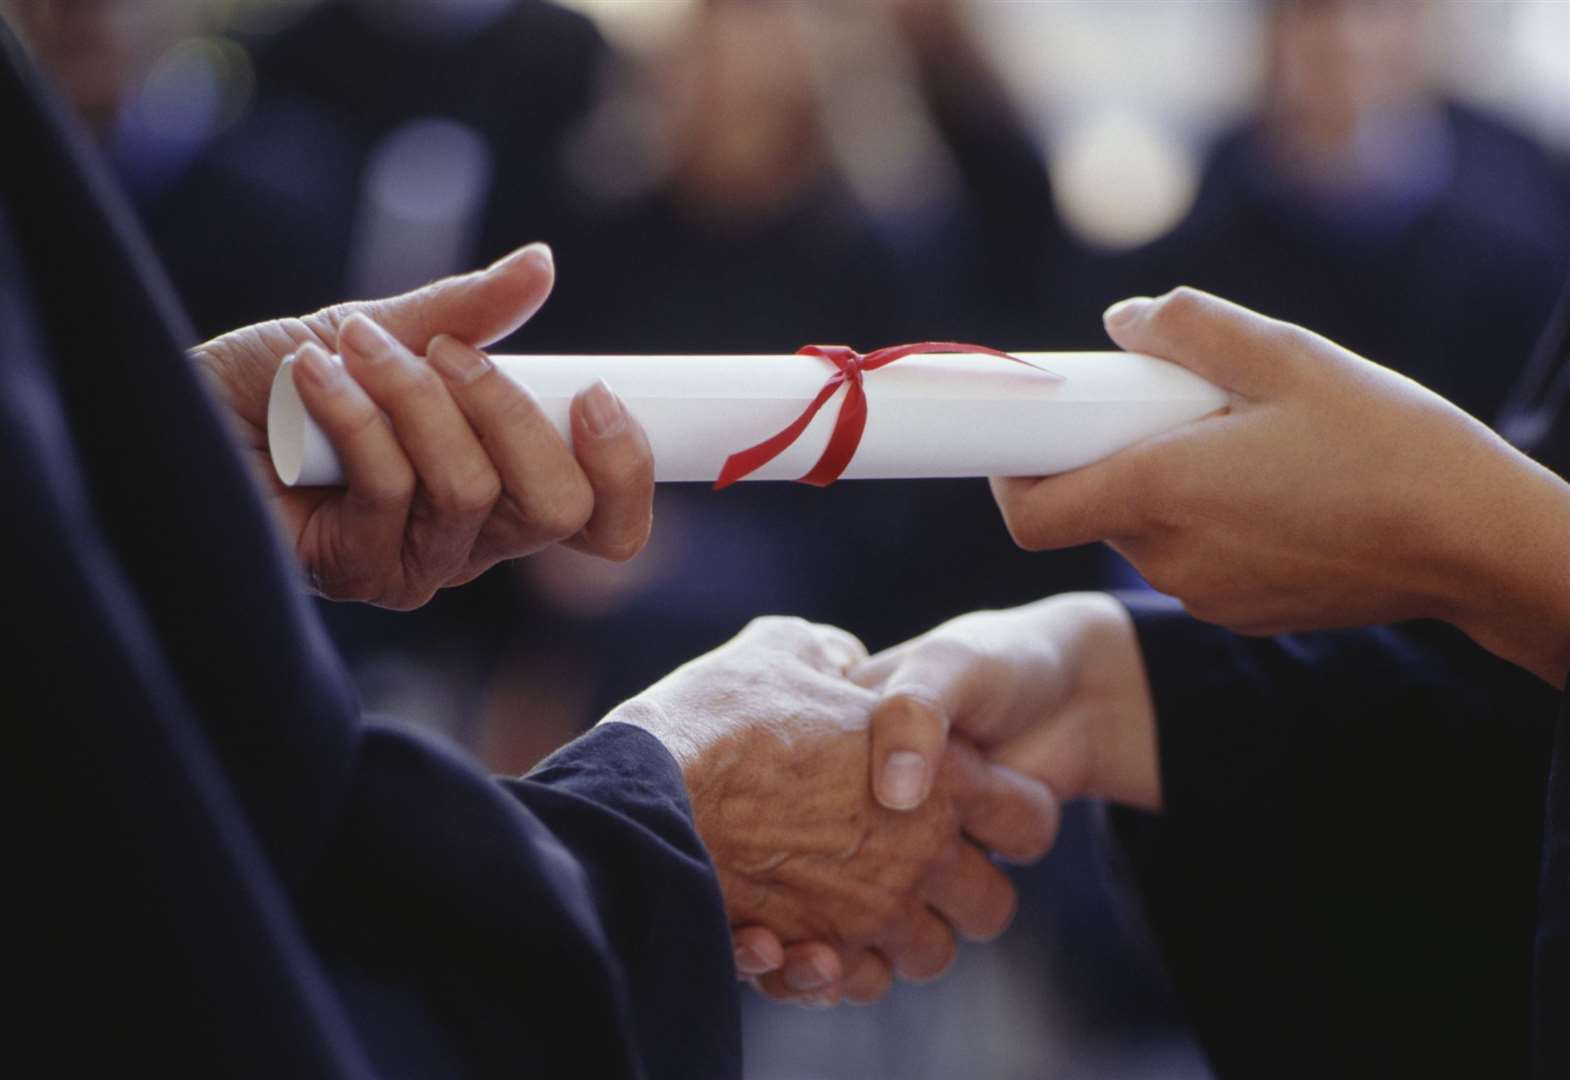 Apprenticeship graduation ceremony - how to get your ticket